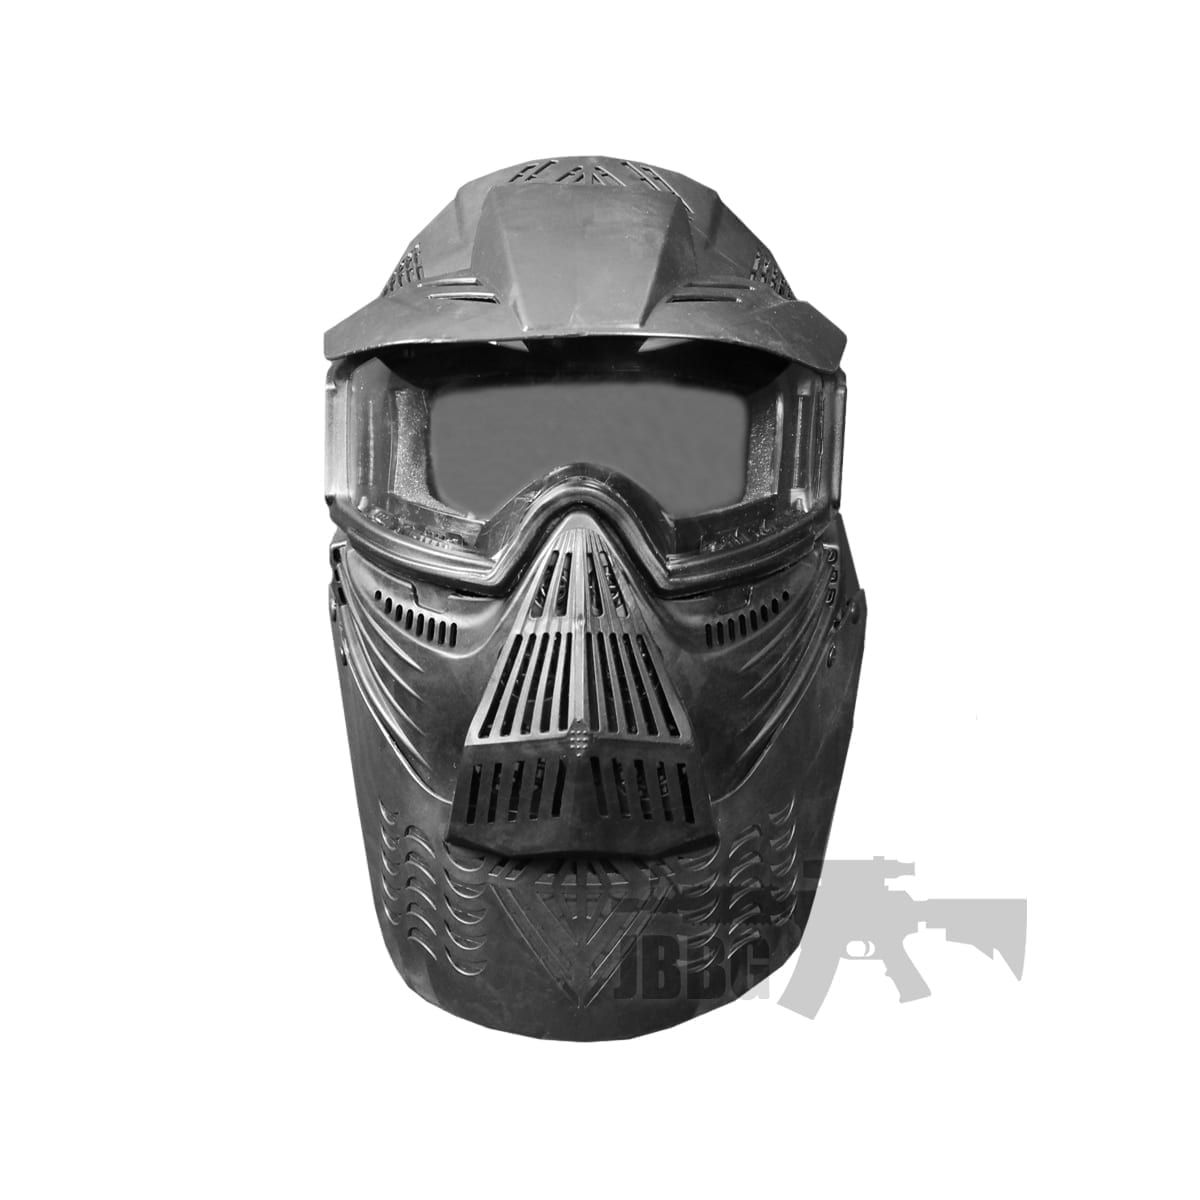 TRANSFORMERS ULTIMATE PROTECTION AIRSOFT MASK BLACK airsoft